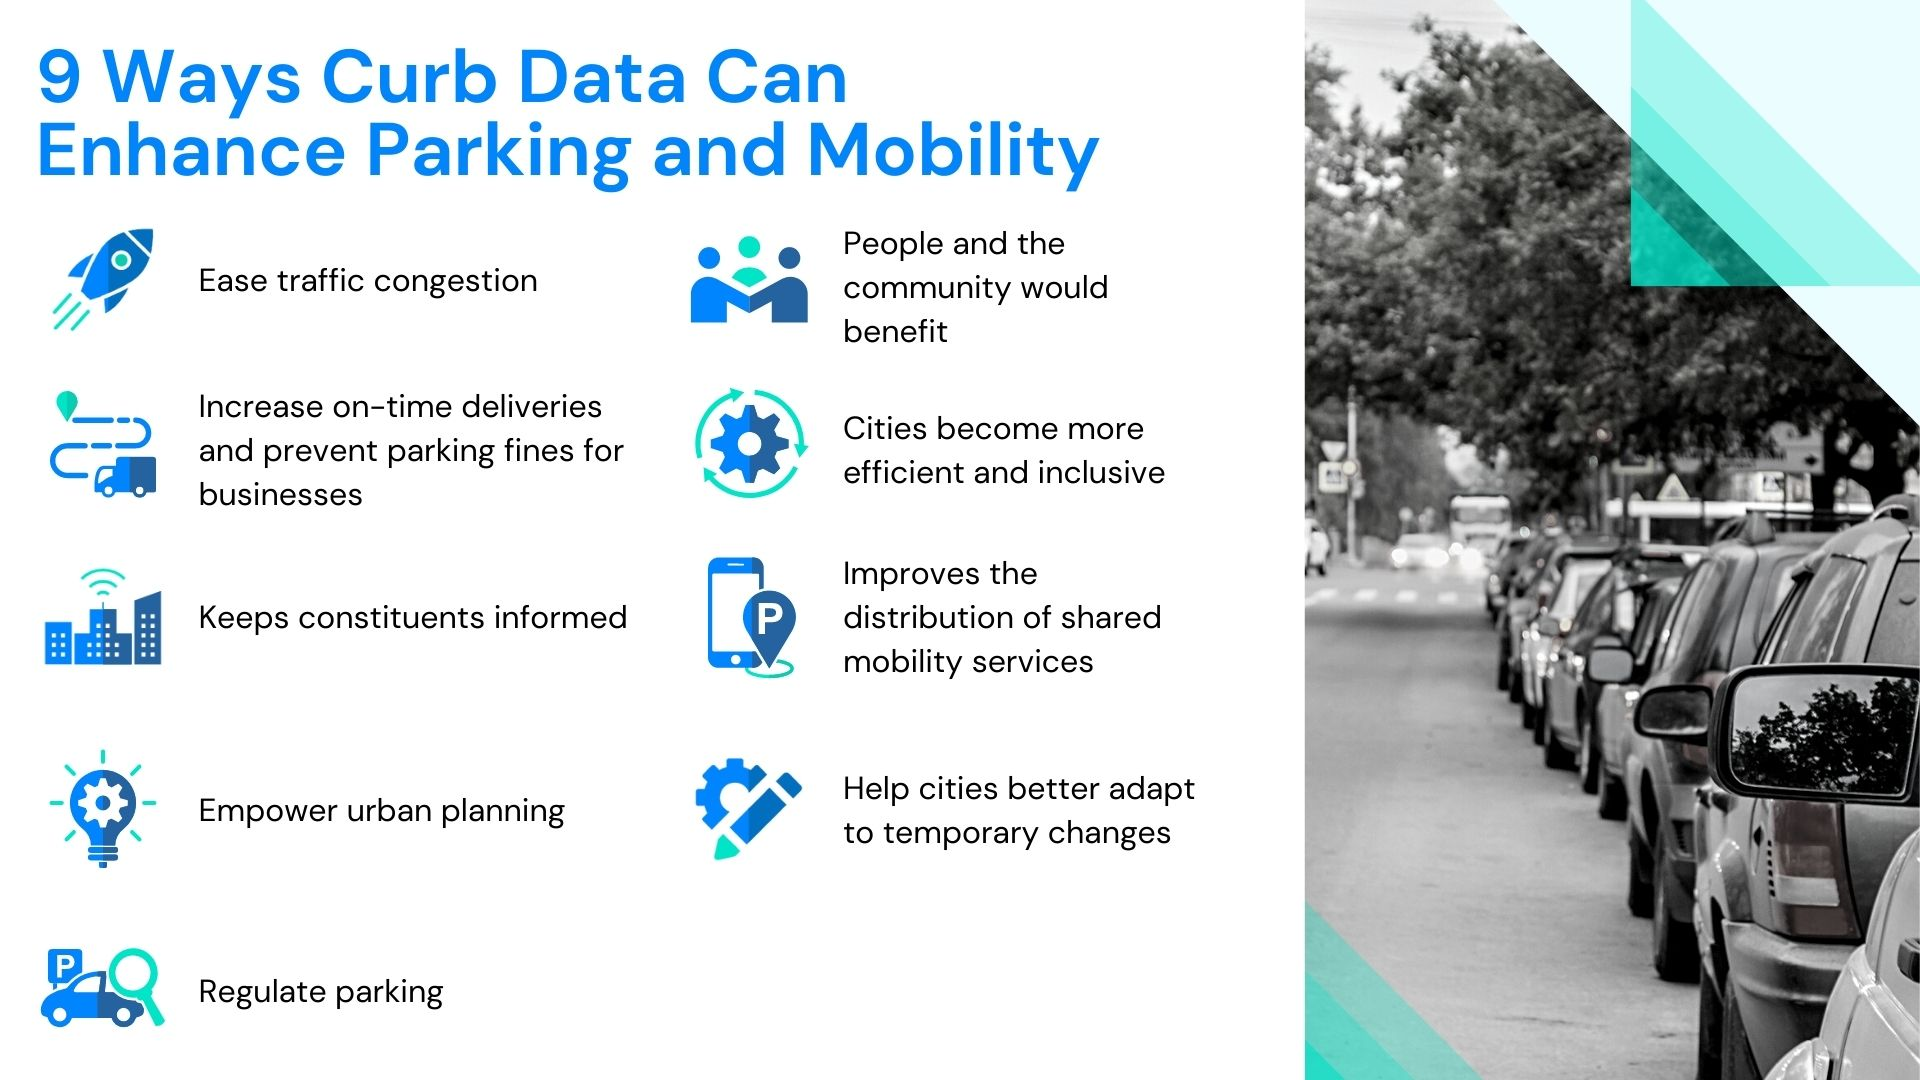 How Curb Data can enhance the parking and mobility experience, curb management